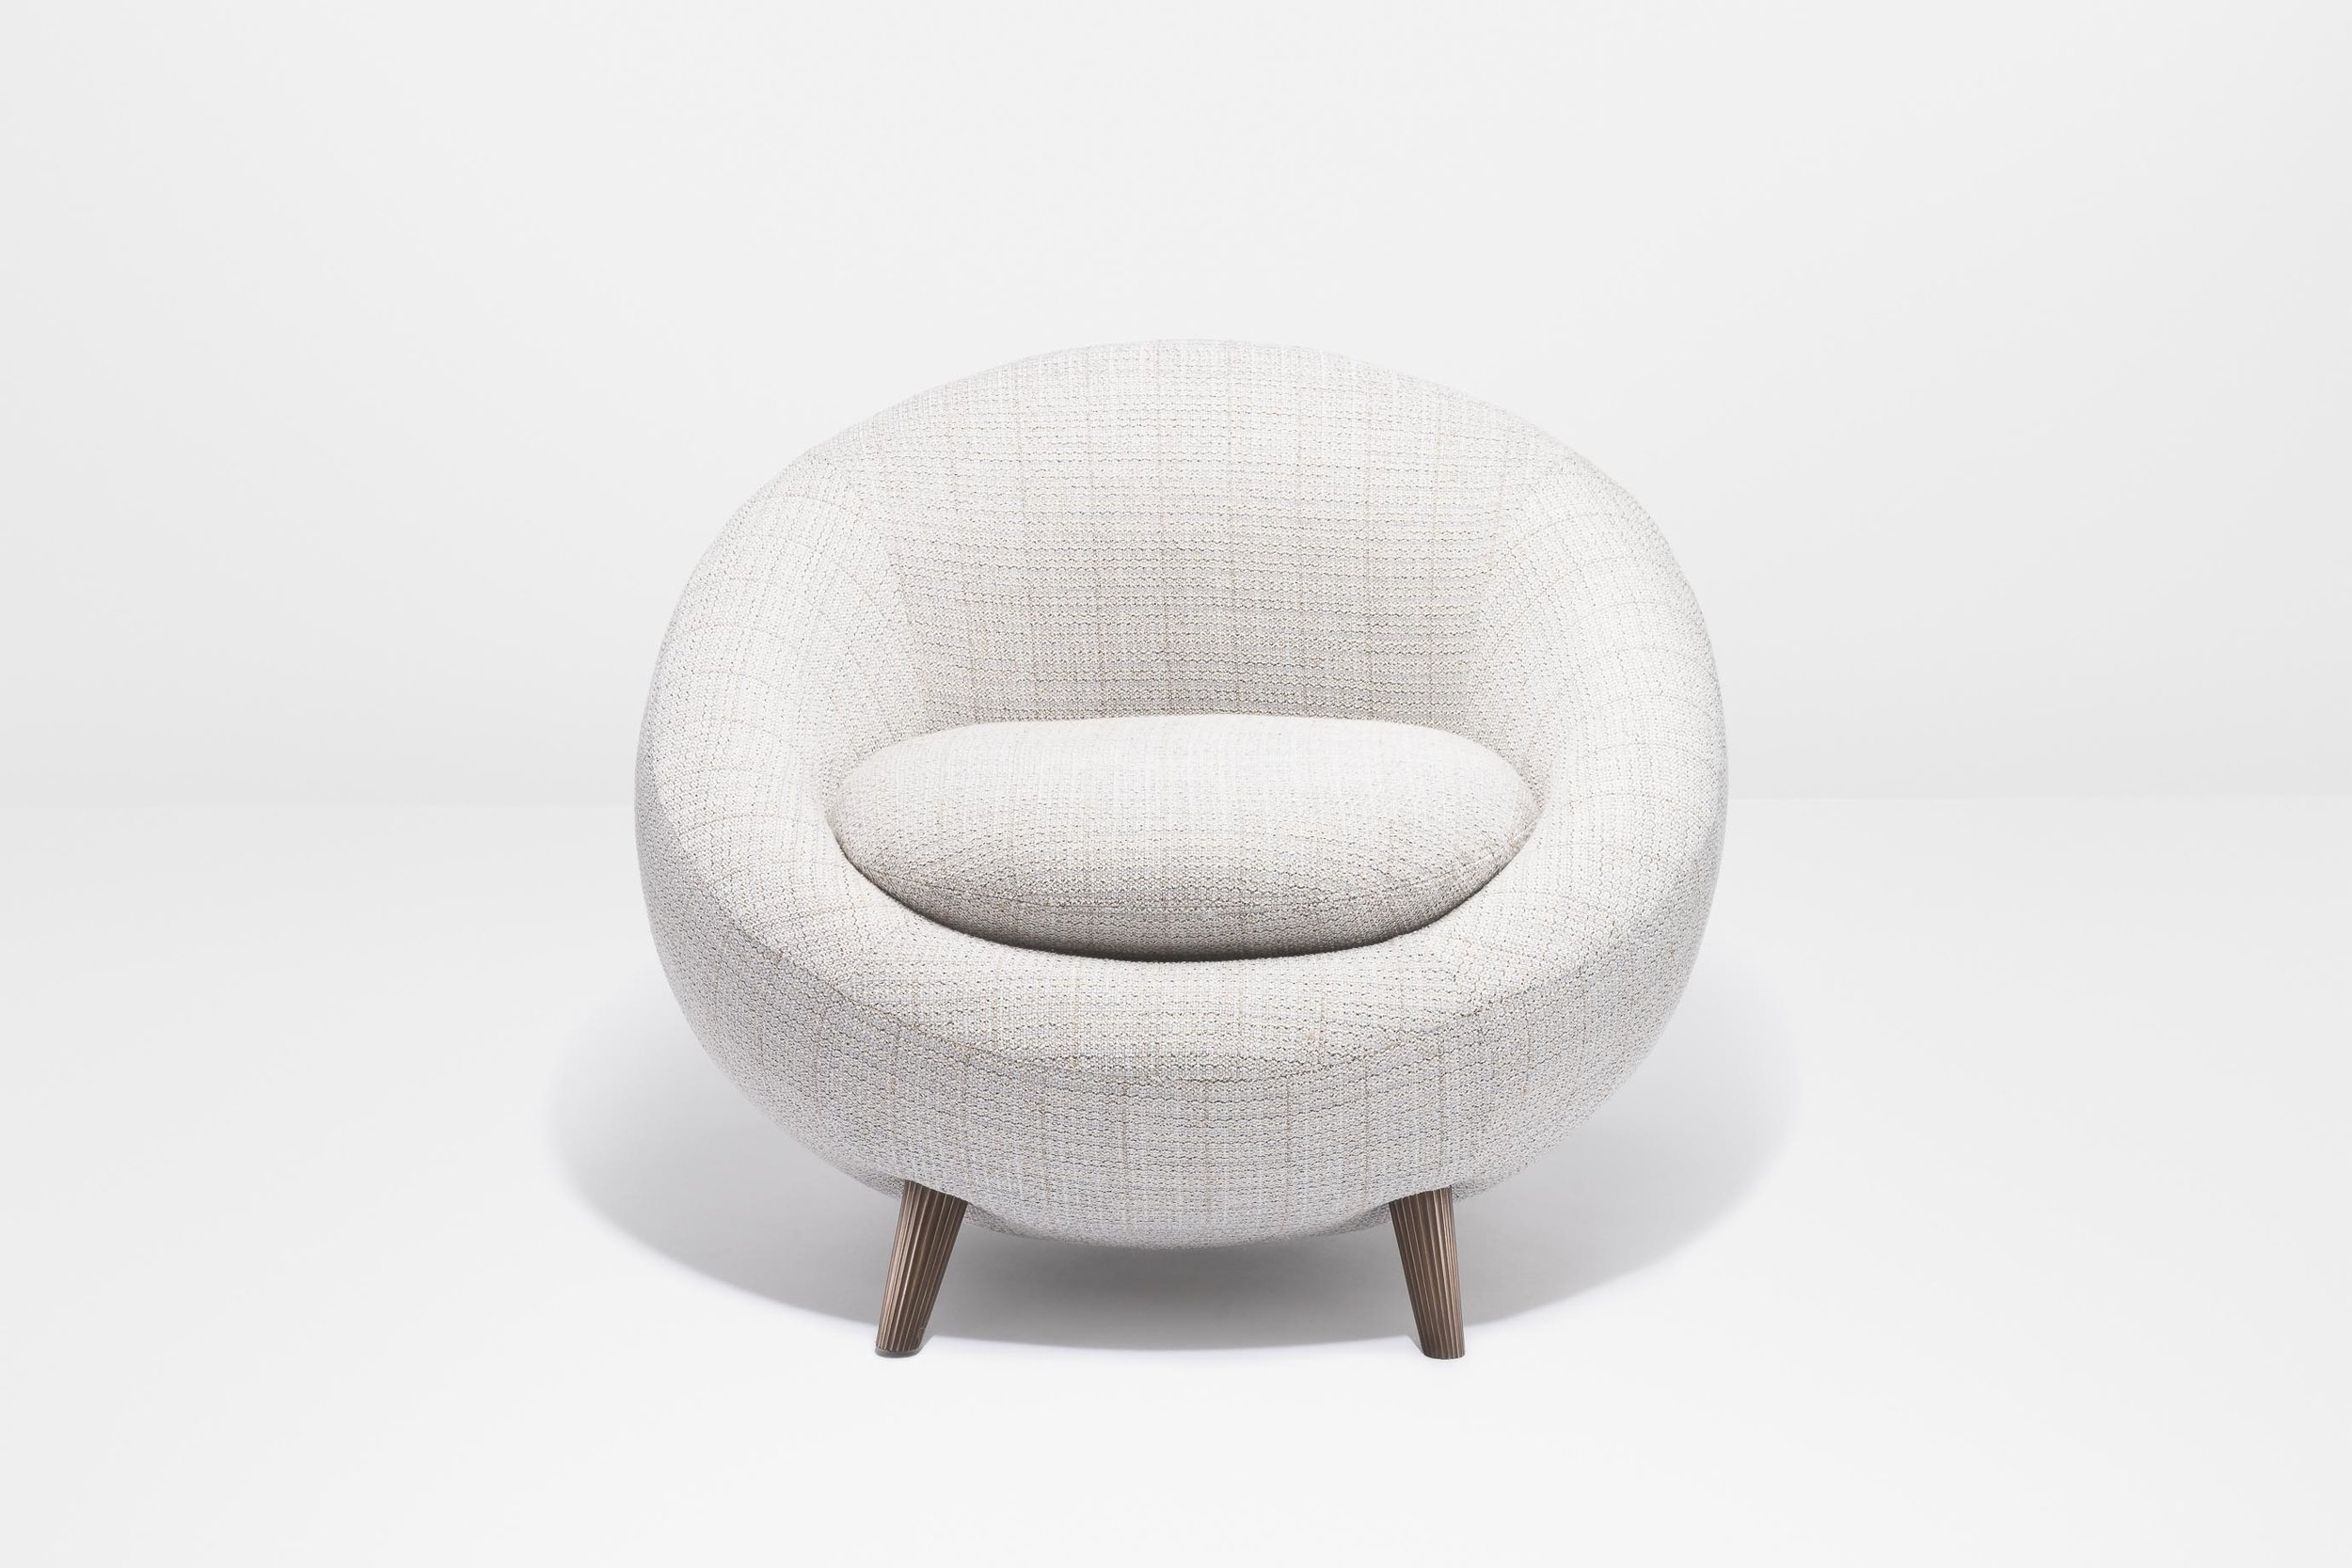 Egg chair - front-LOW-RES.jpg